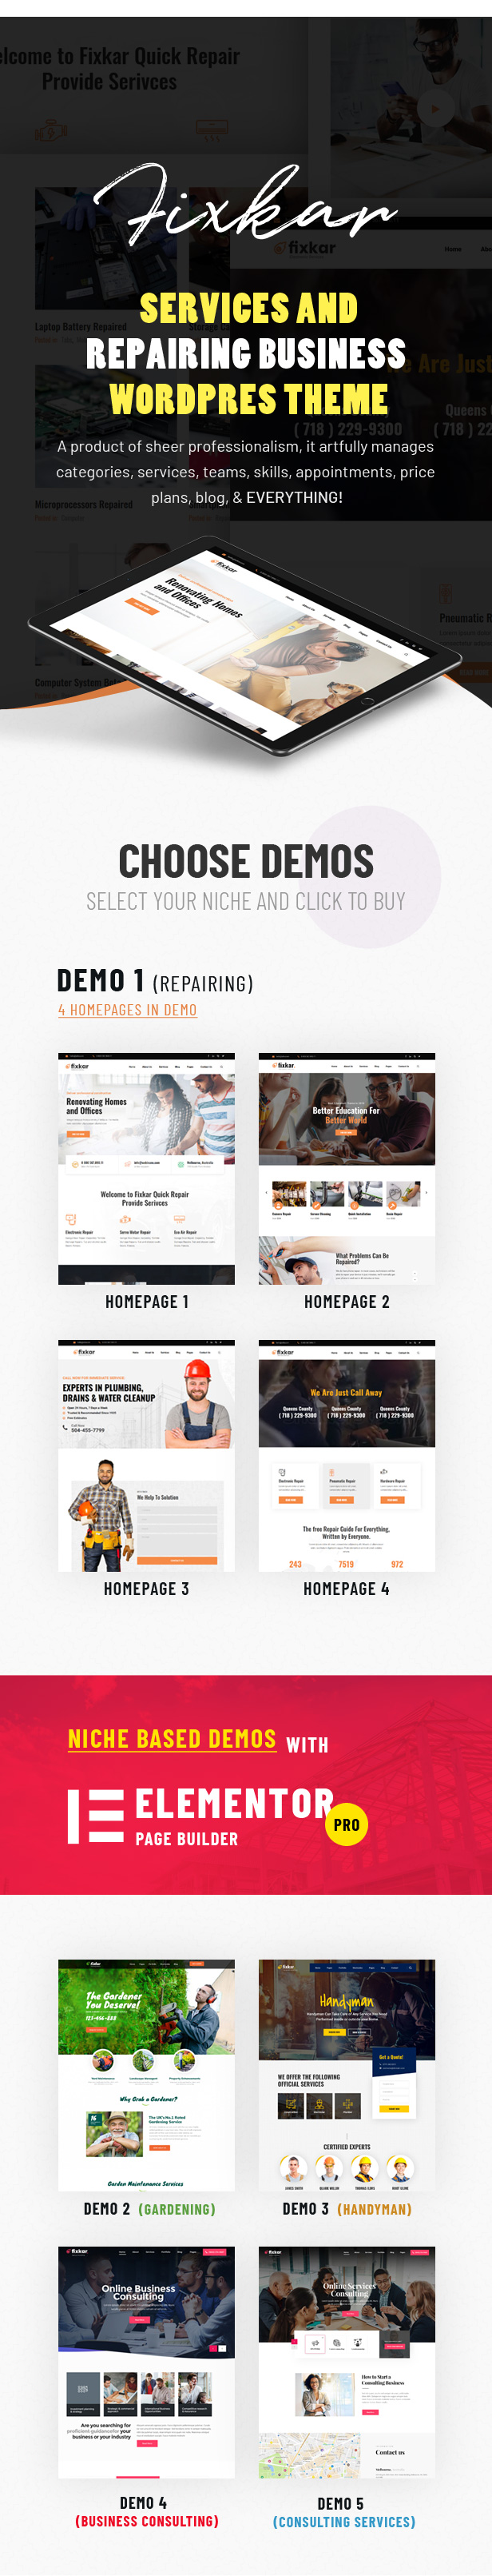 fixkar html template for services and repairing business